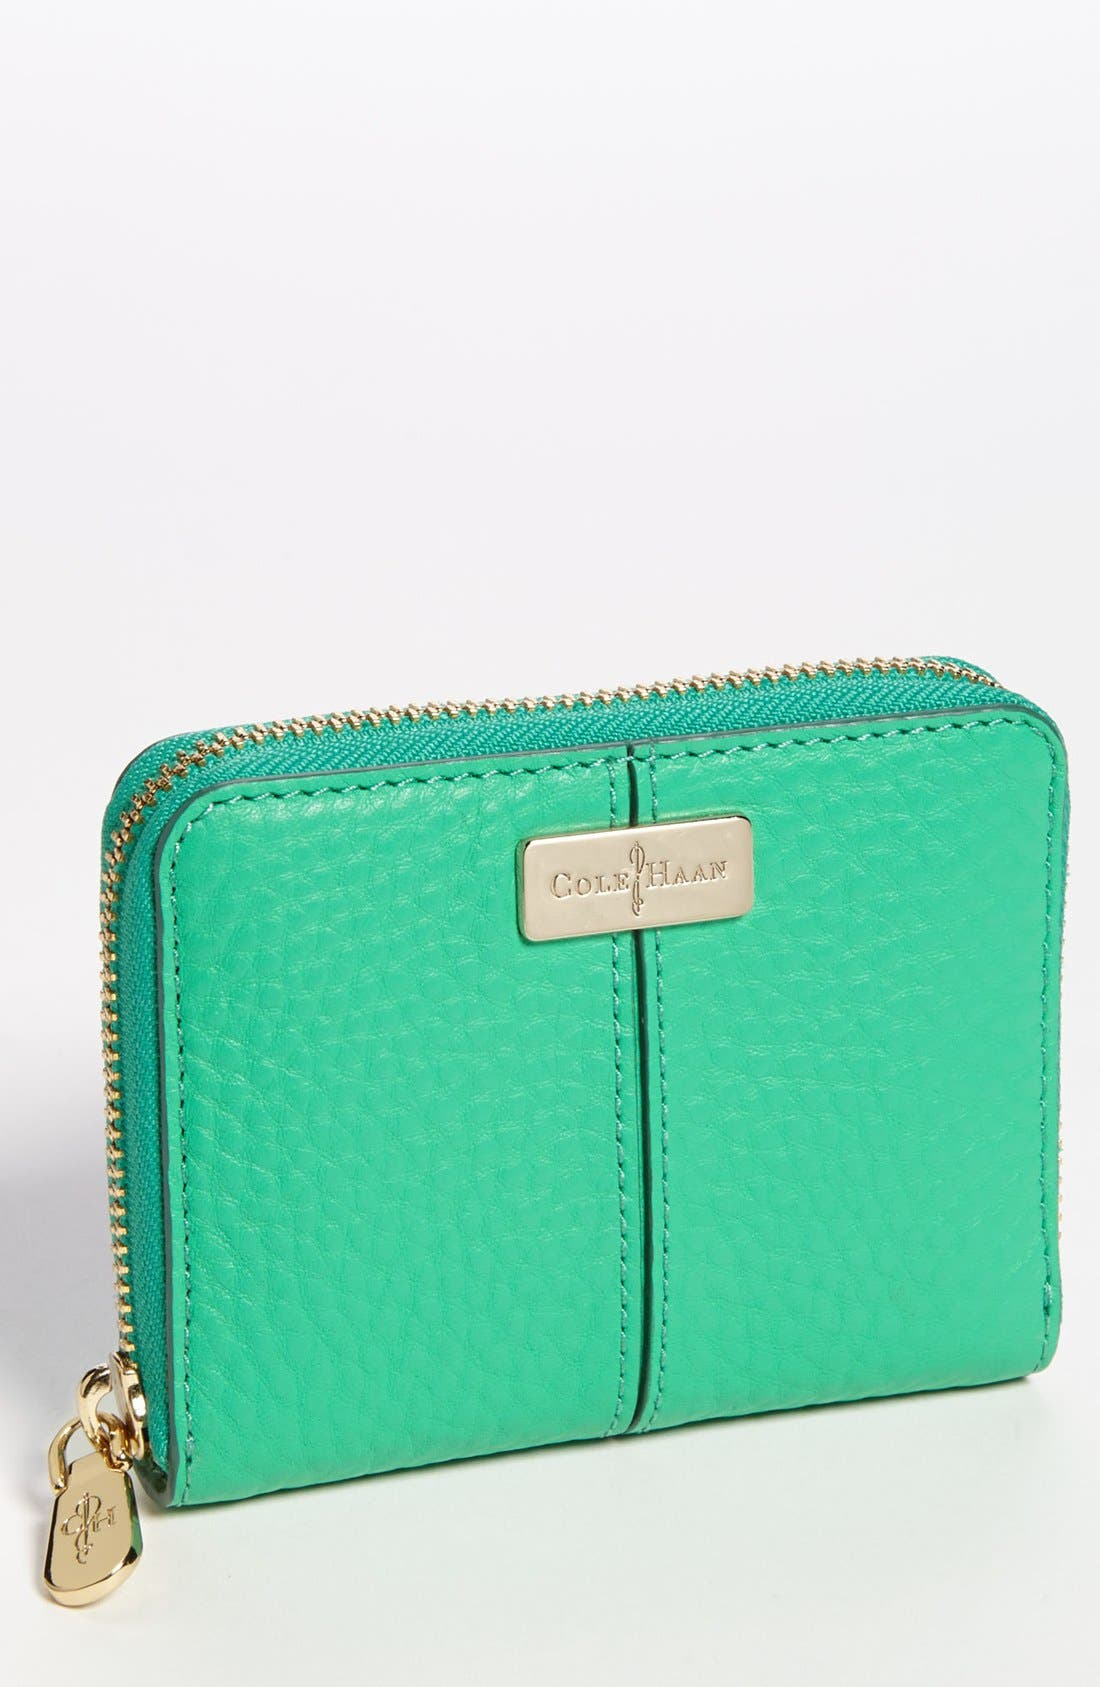 Main Image - Cole Haan 'Medium' Leather Zip Wallet